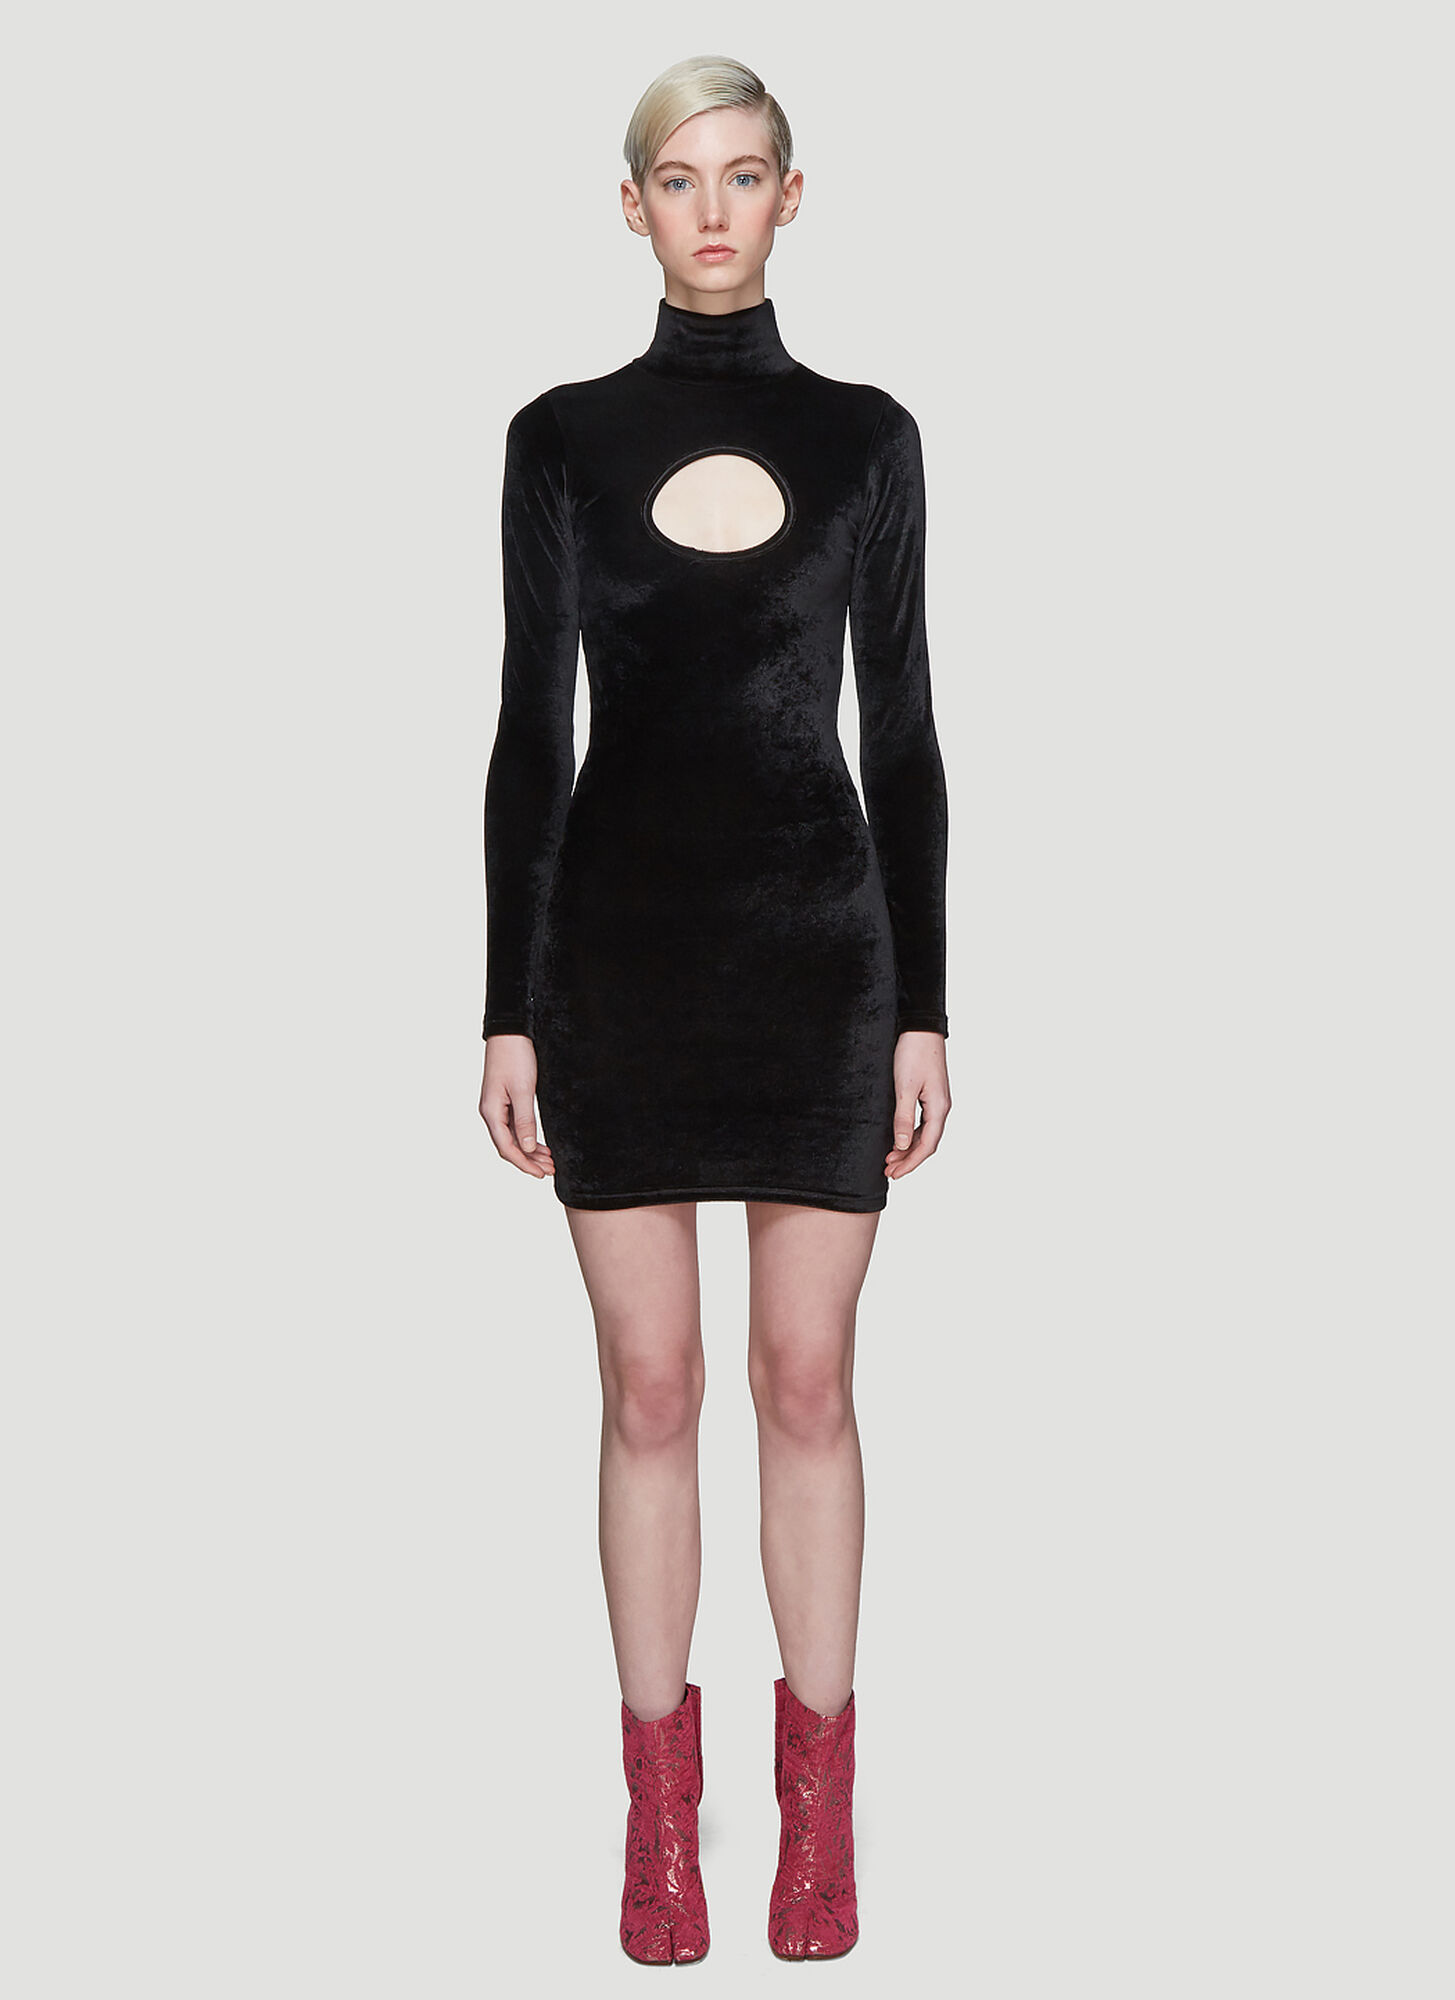 Vetements Cut-Out Body Dress in Black